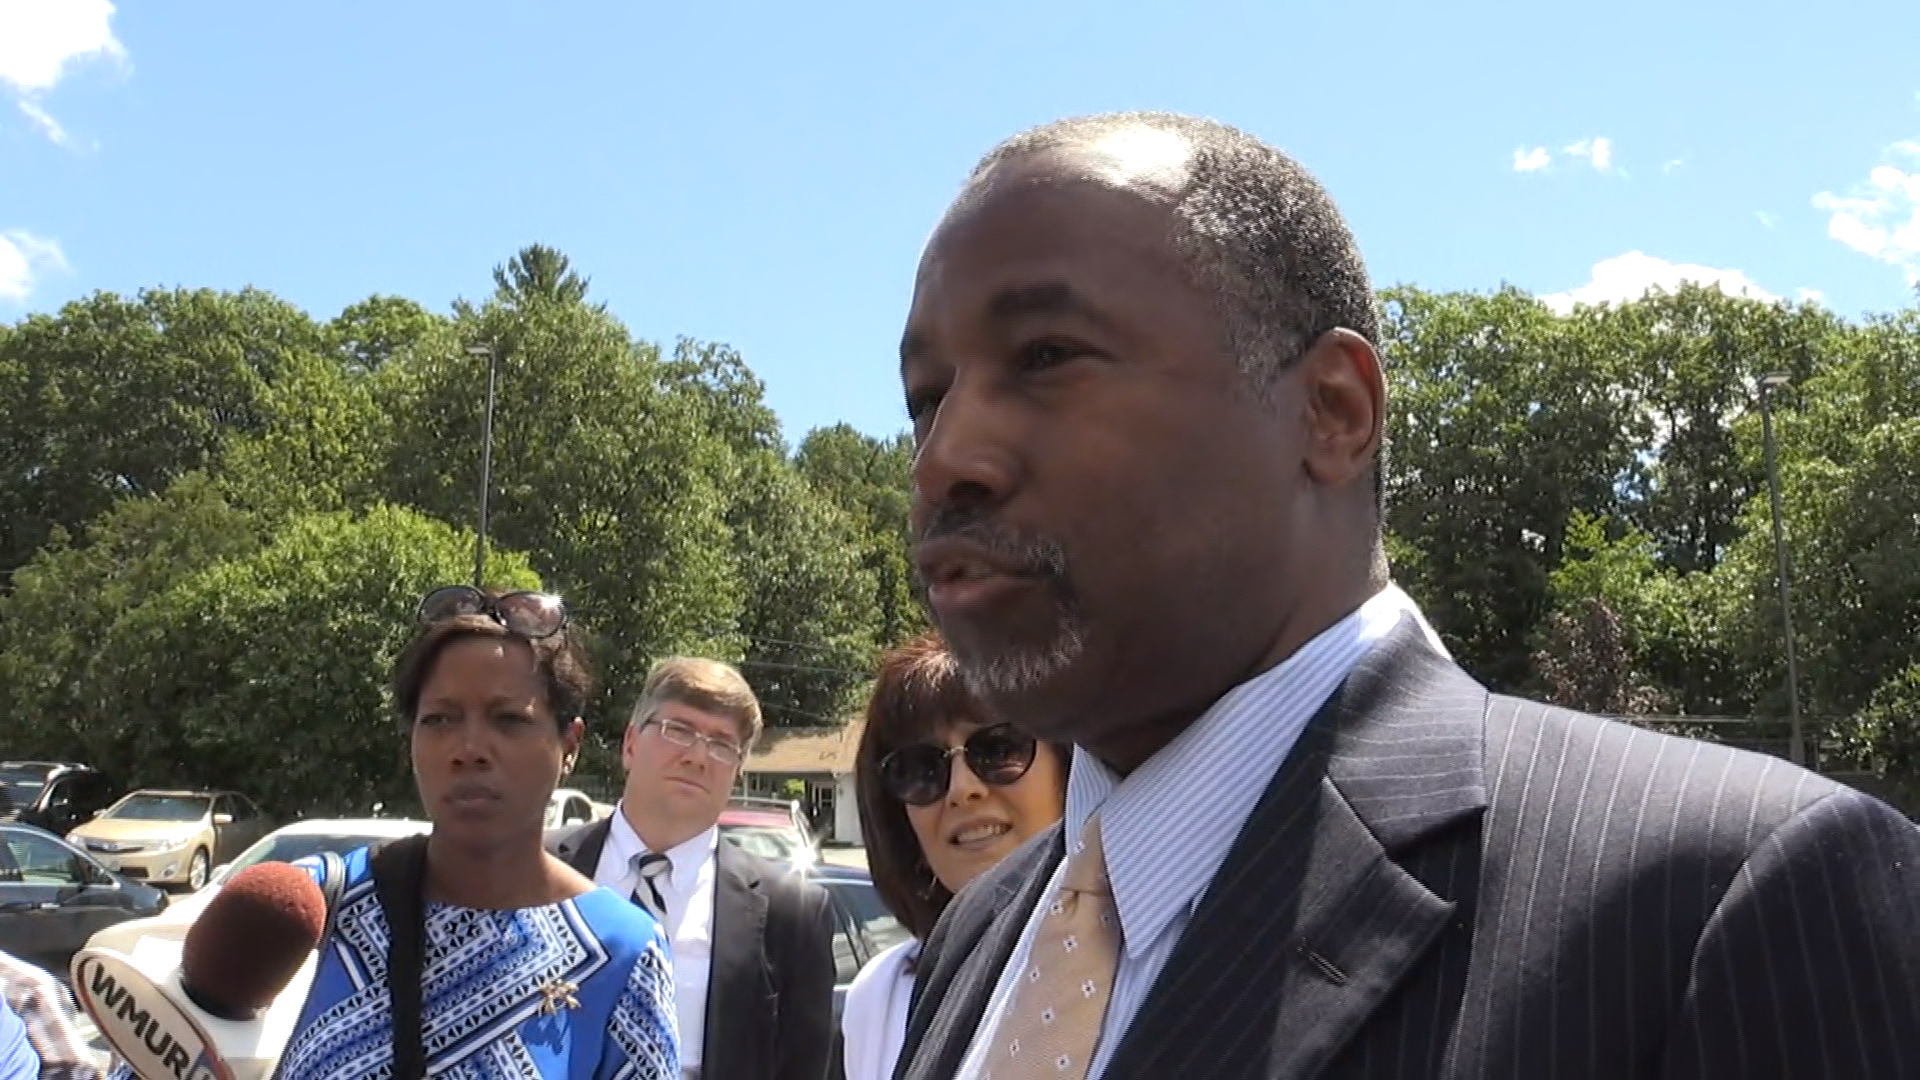 Carson discusses past use of fetal tissue